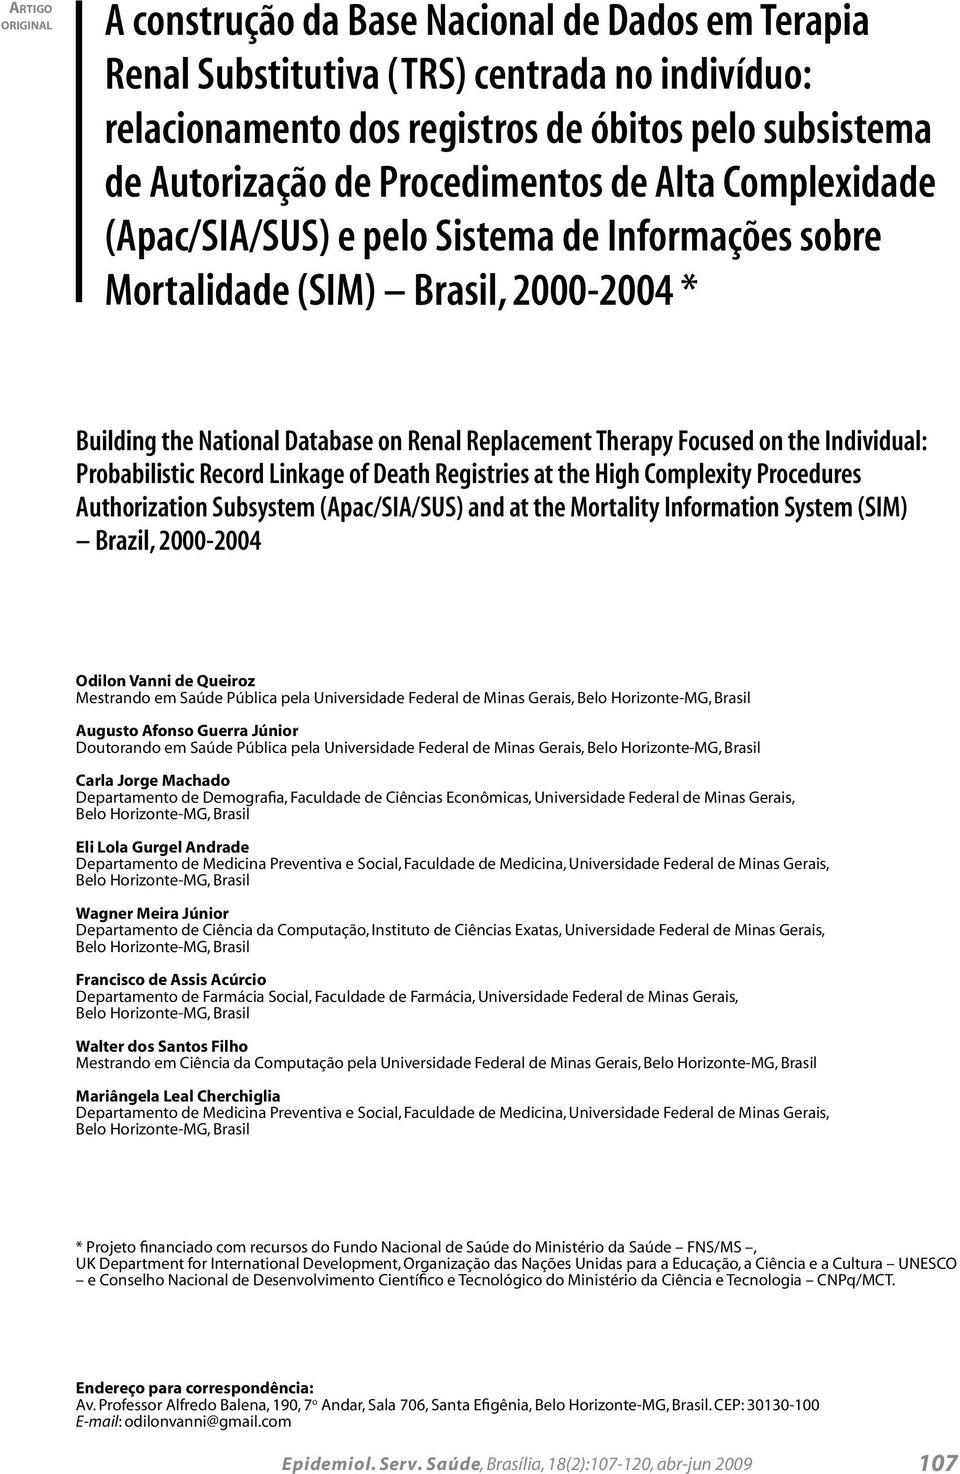 Individual: Probabilistic Record Linkage of Death Registries at the High Complexity Procedures Authorization Subsystem (Apac/SIA/SUS) and at the Mortality Information System (SIM) Brazil, 2000-2004